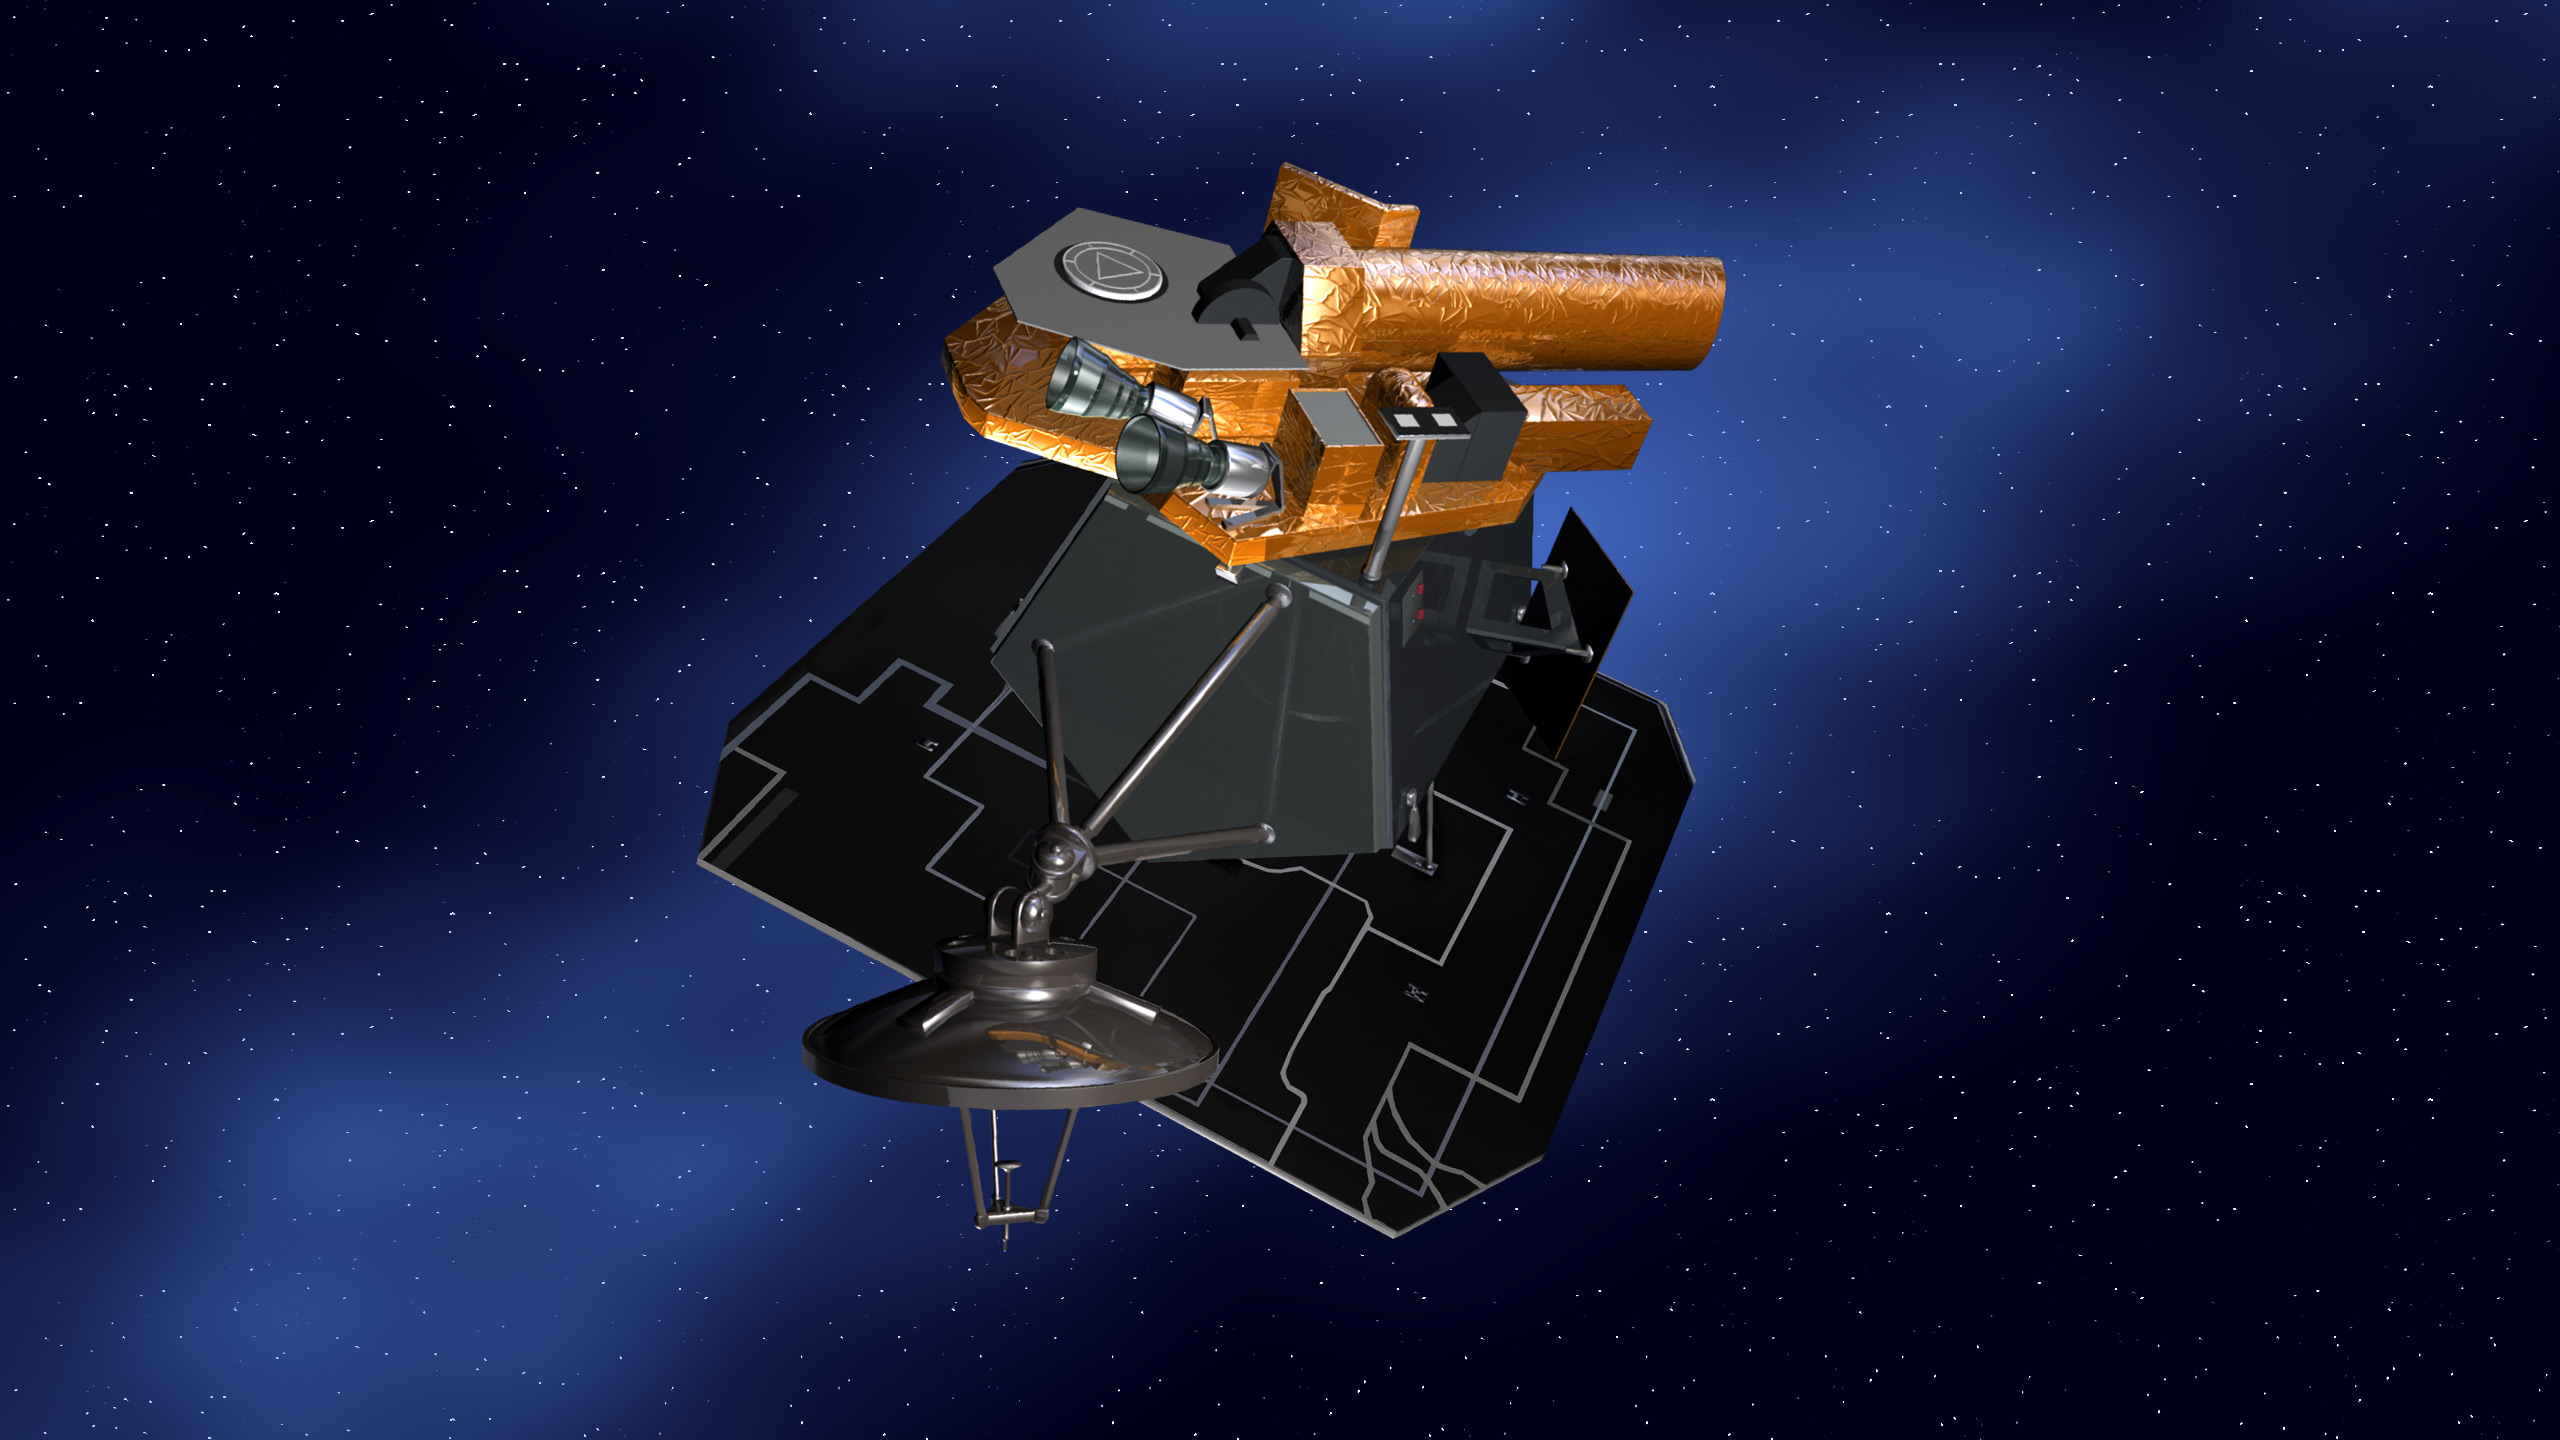 2005 deep impact space probe - photo #4